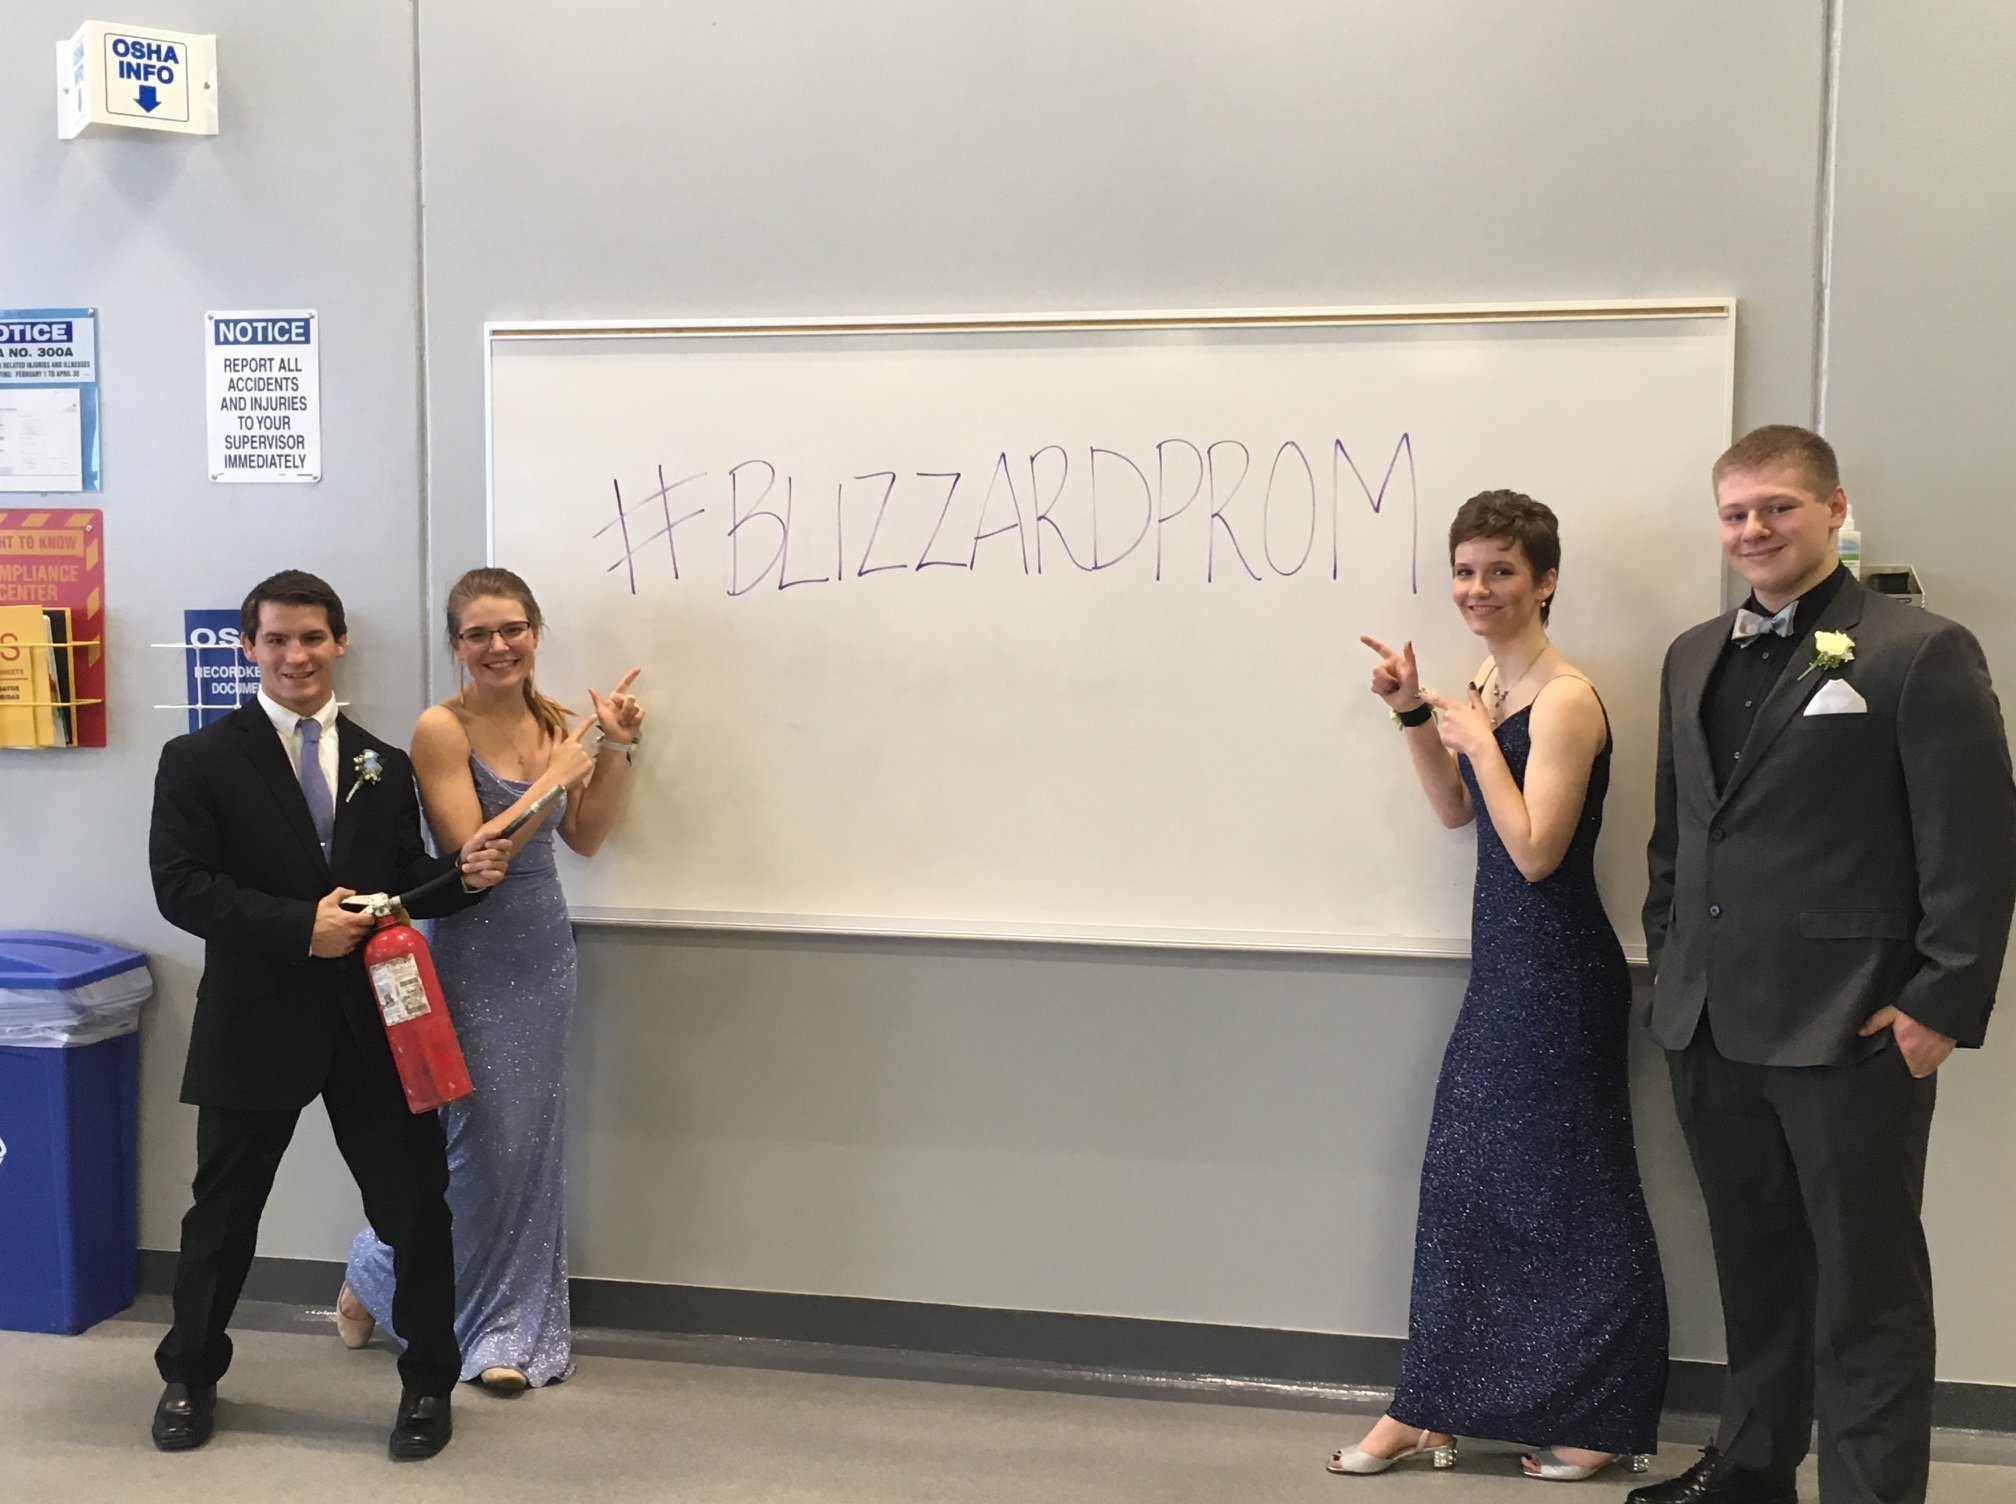 With as much as 15 inches (38 centimeters) of snow in the forecast, the students couldn't take photos outside for what they called #BlizzardProm. (Source: Forest Lake Fire Department)